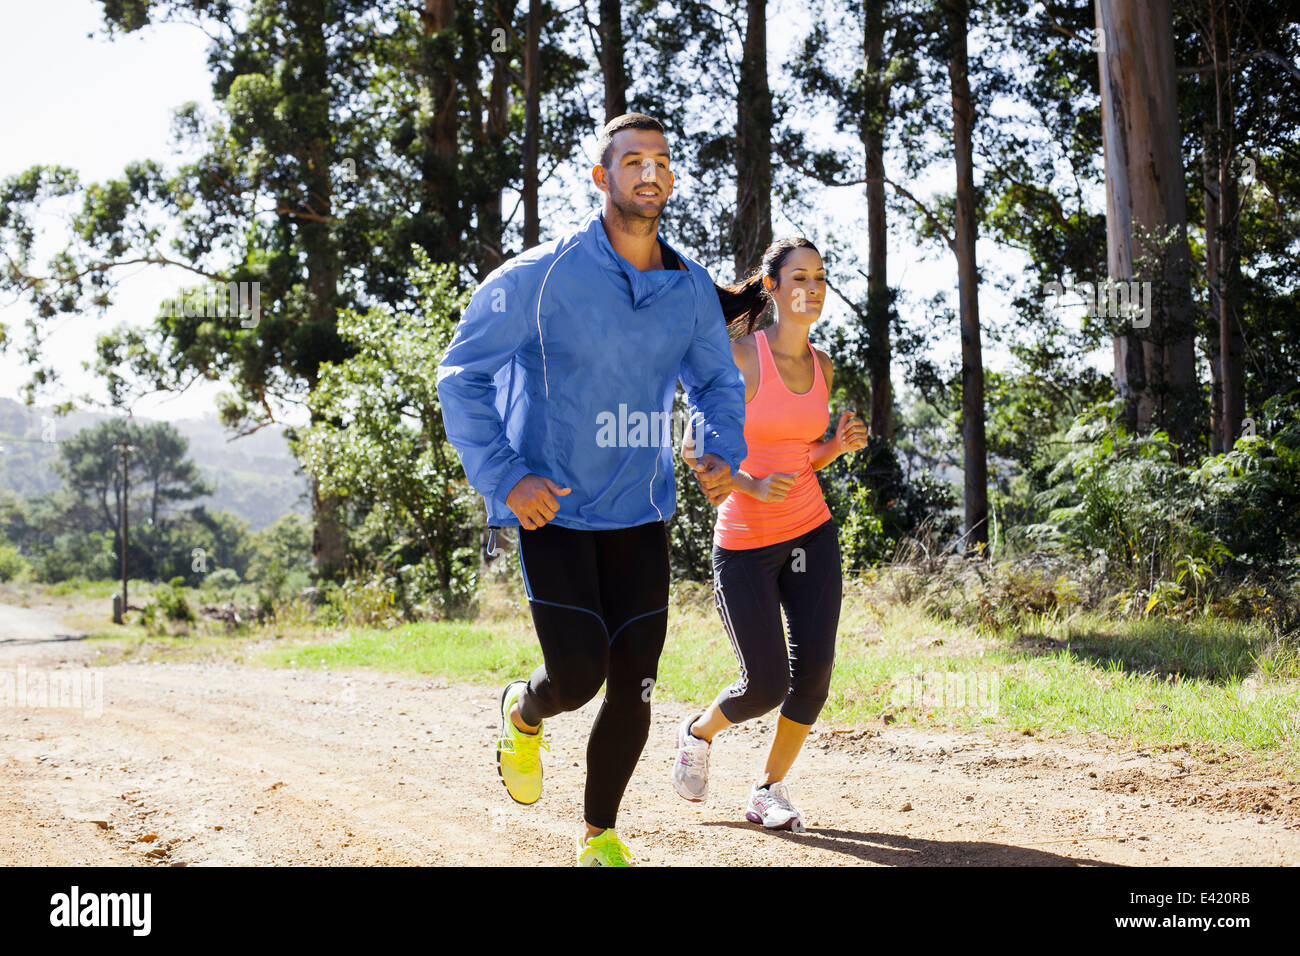 Young couple jogging in forest - Stock Image